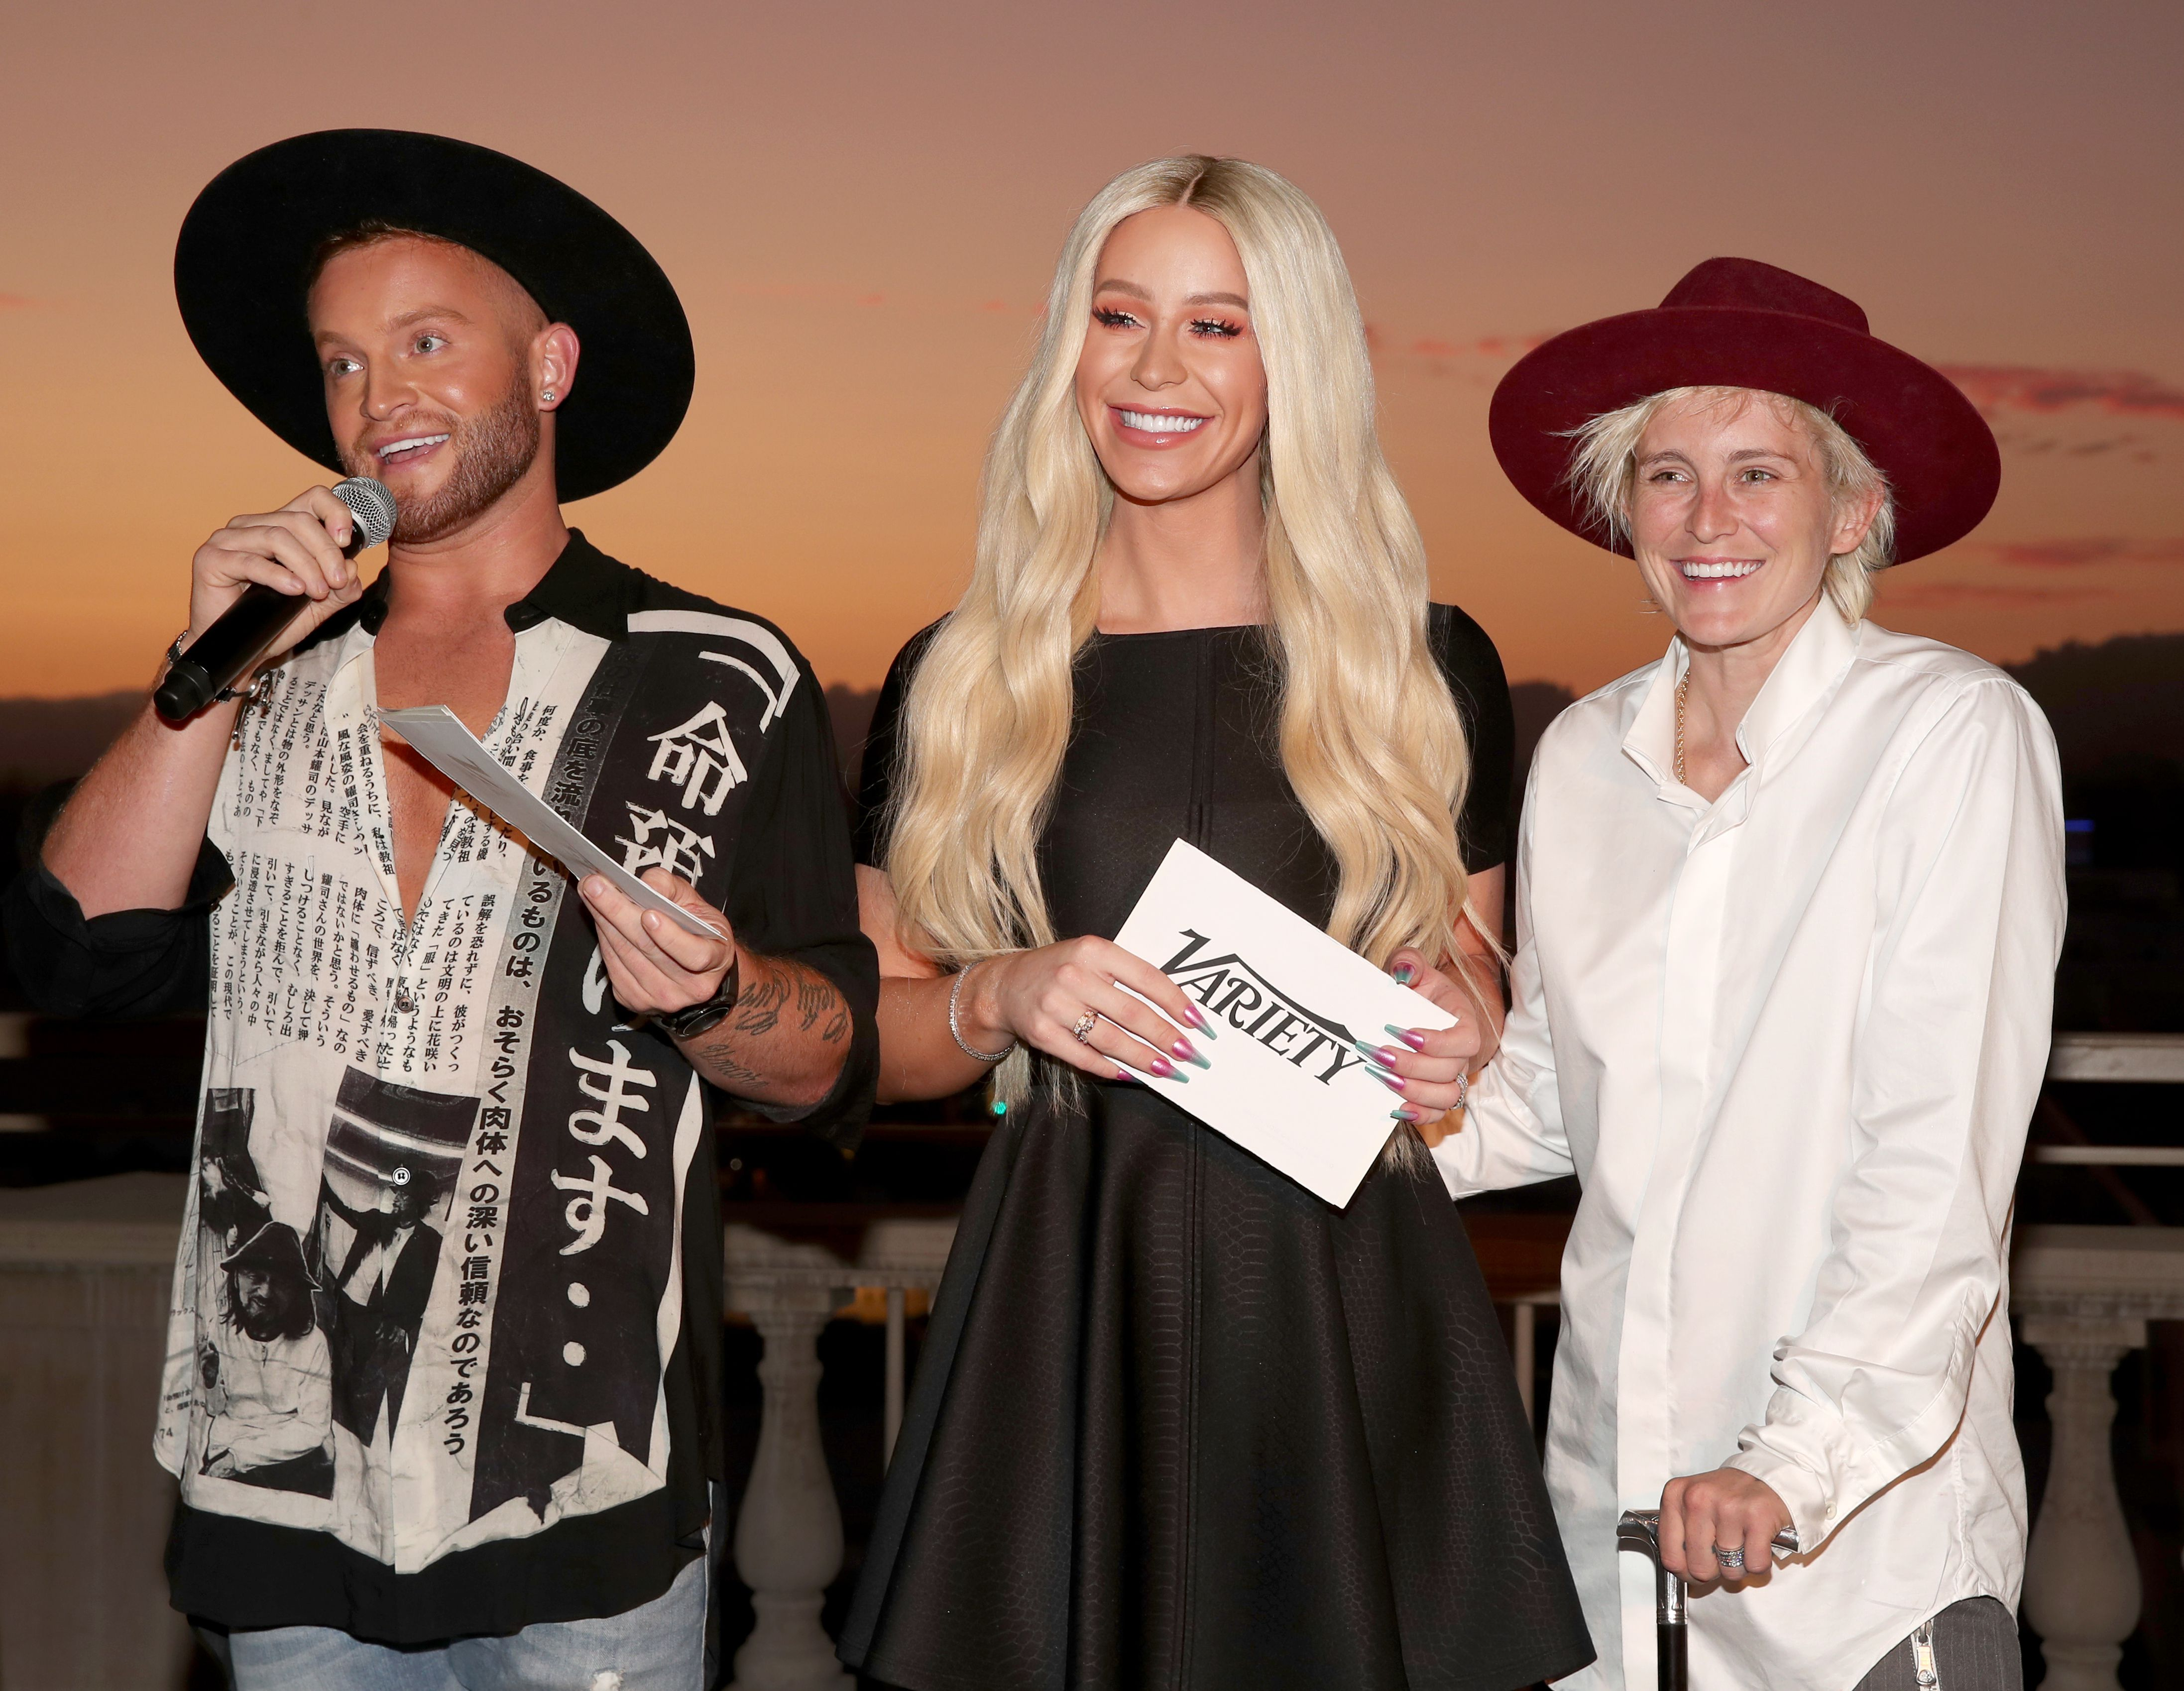 August Getty, Gigi Gorgeous and Nats GettyVariety's Philanthropist of the Year Dinner, Inside, Los Angeles, USA - 30 Jul 2019